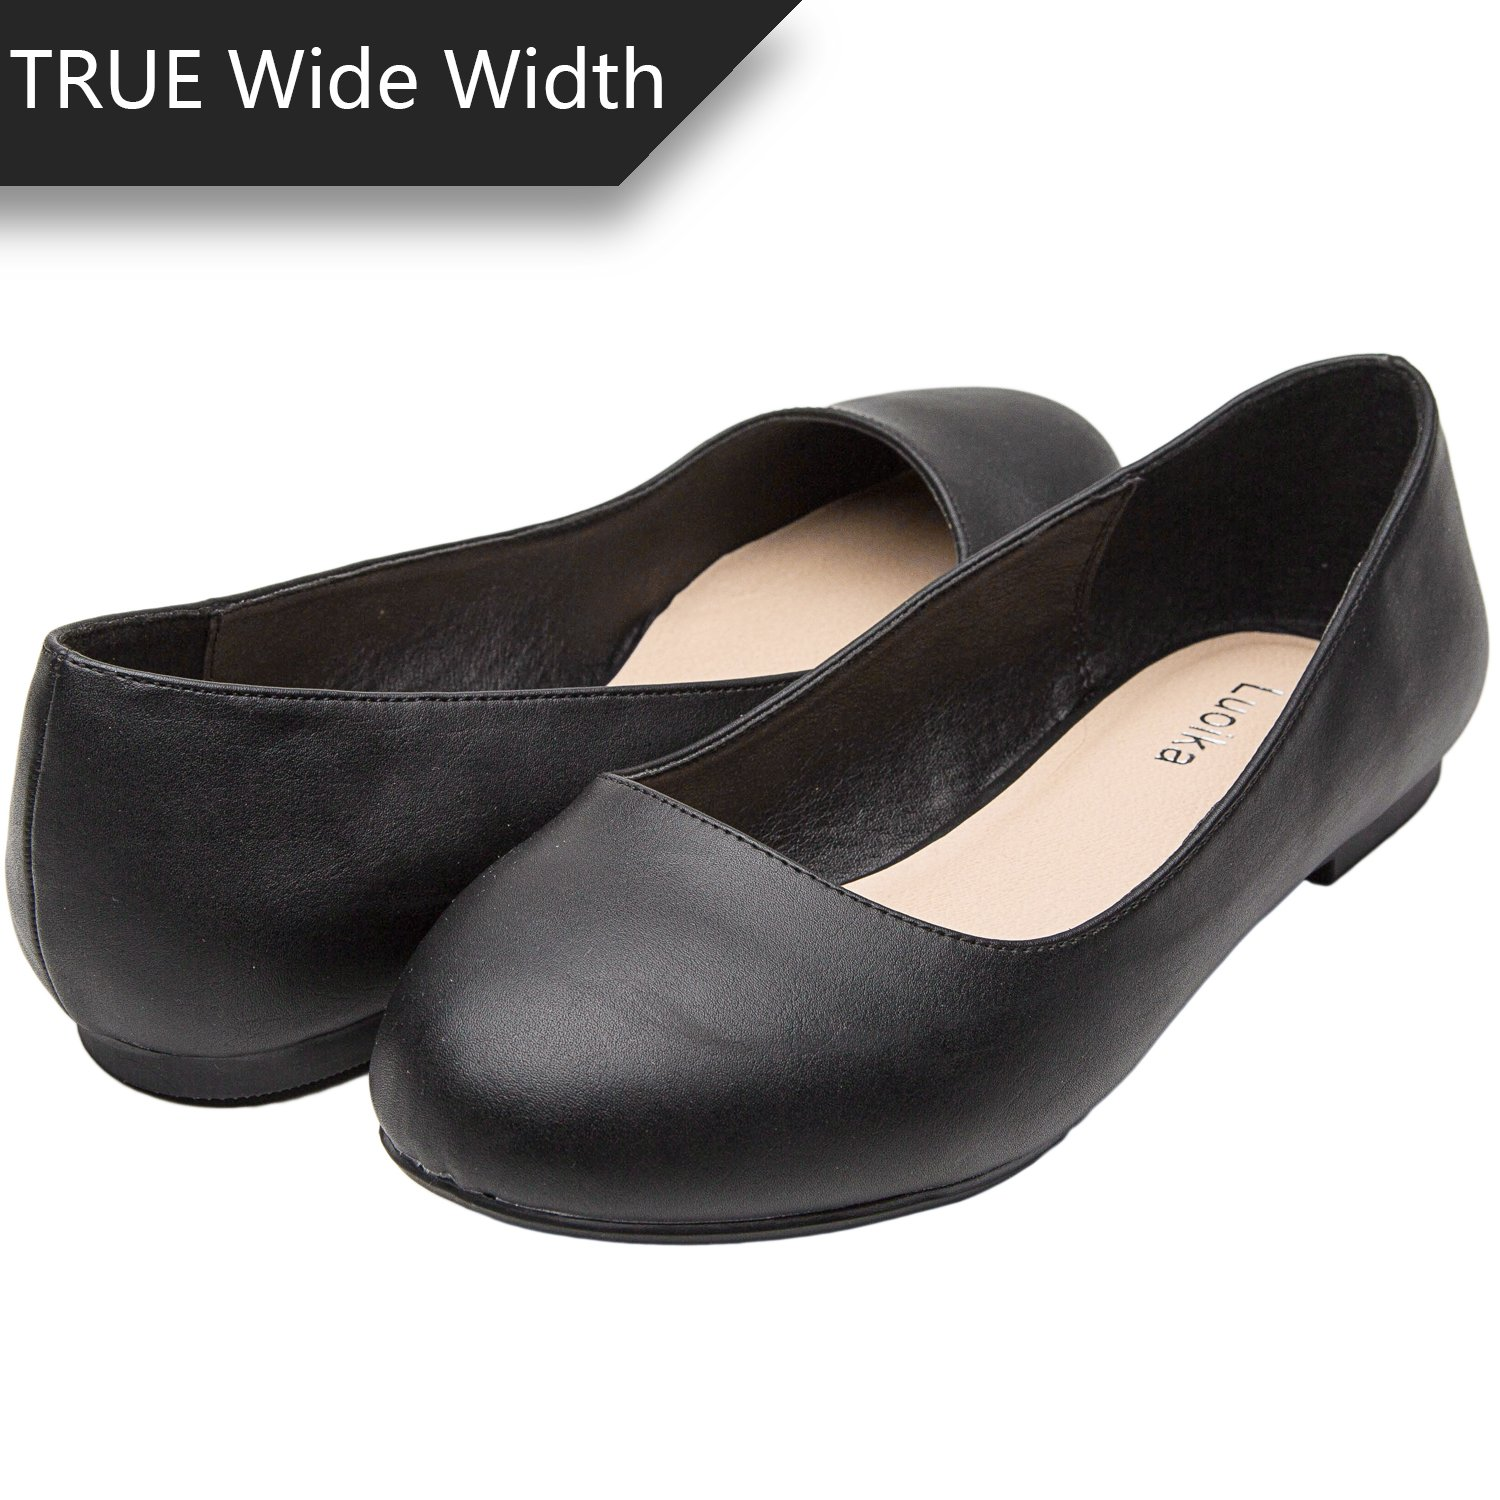 Luoika Women's Wide Width Flat Shoes - Comfortable Slip On Round Toe Ballet Flats. (180110 Black PU,9WW)